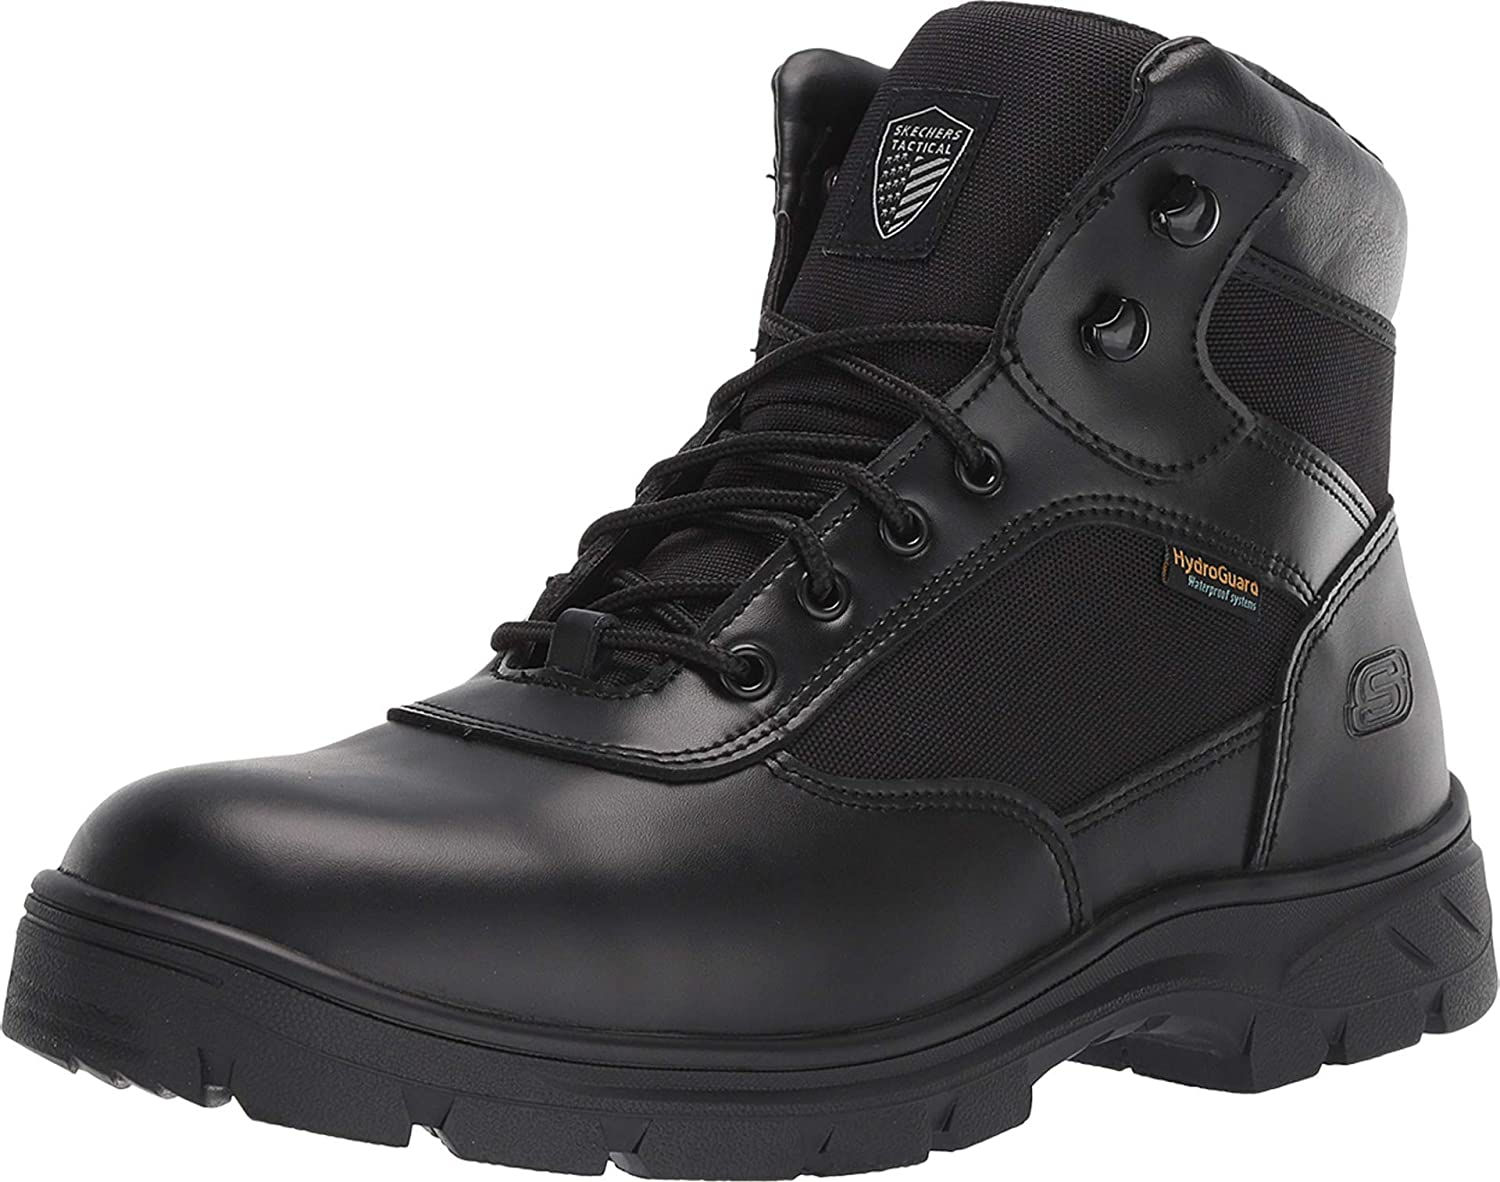 Skechers Men's New Wascana-Benen Military and Tactical Boot: Shoes